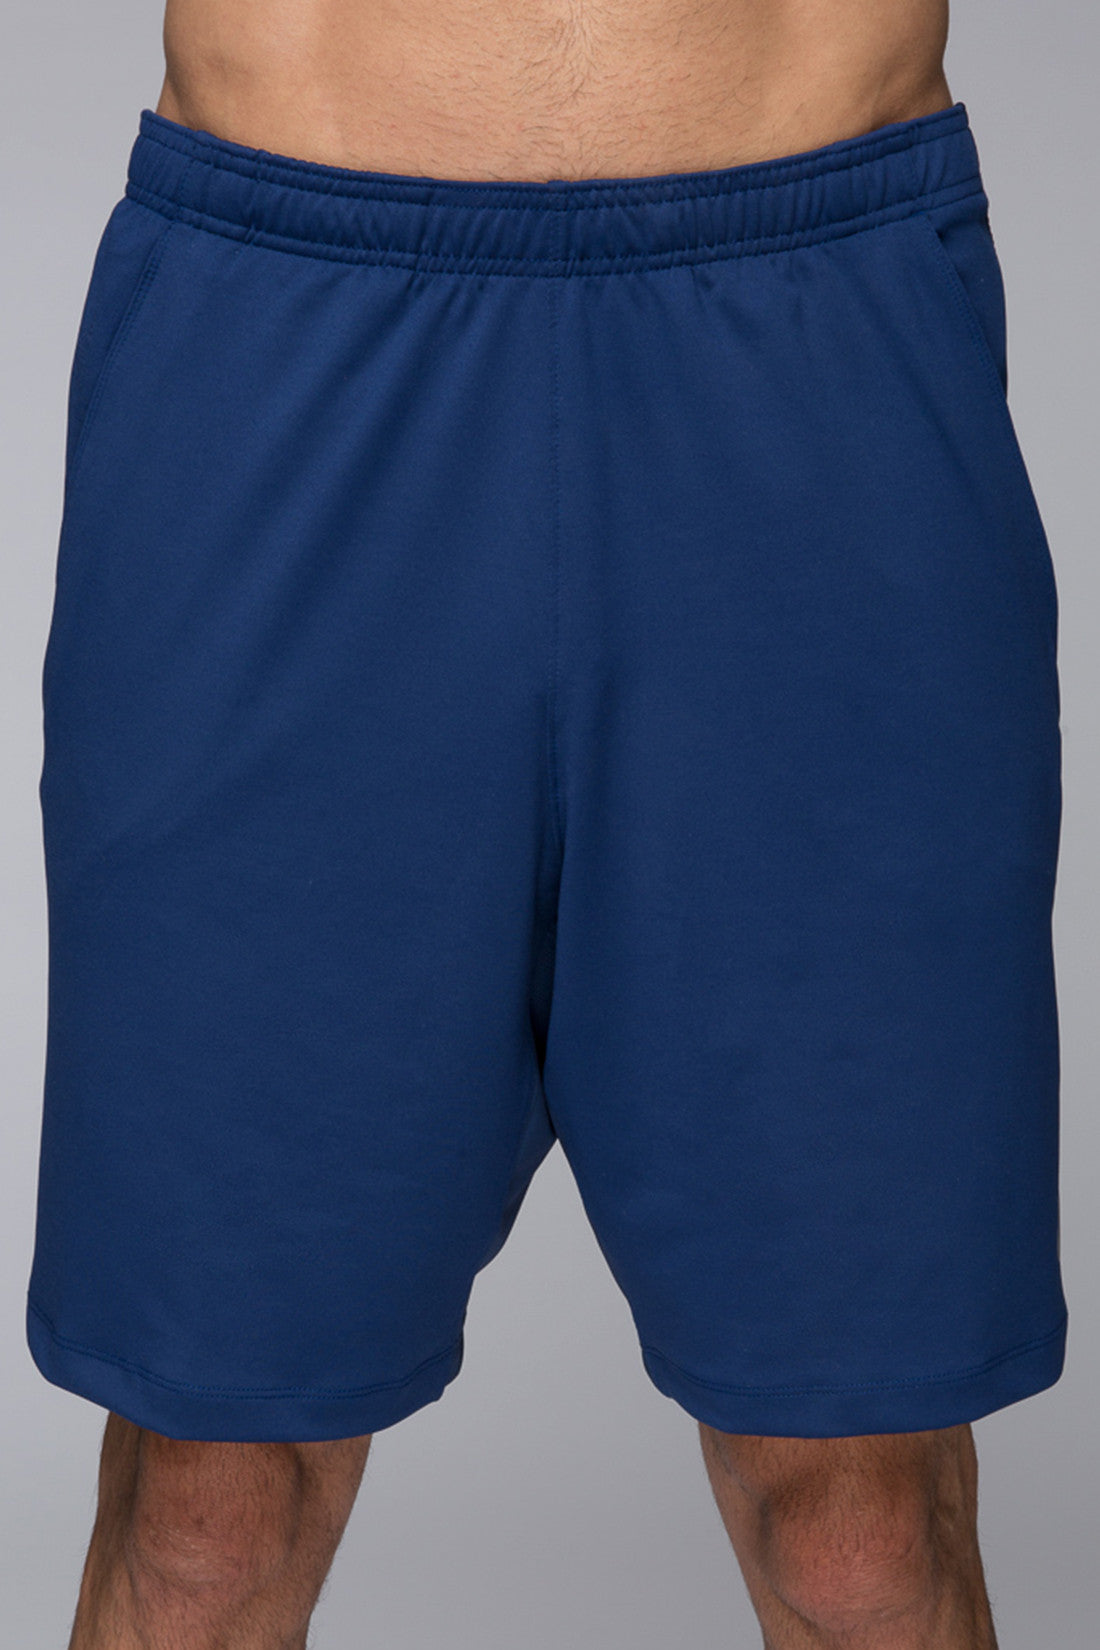 Men's performance shorts, gym shorts, breathable, 8inch shorts, blue, light weight, sweat wicking, Legacy Knit short - Navy Blue